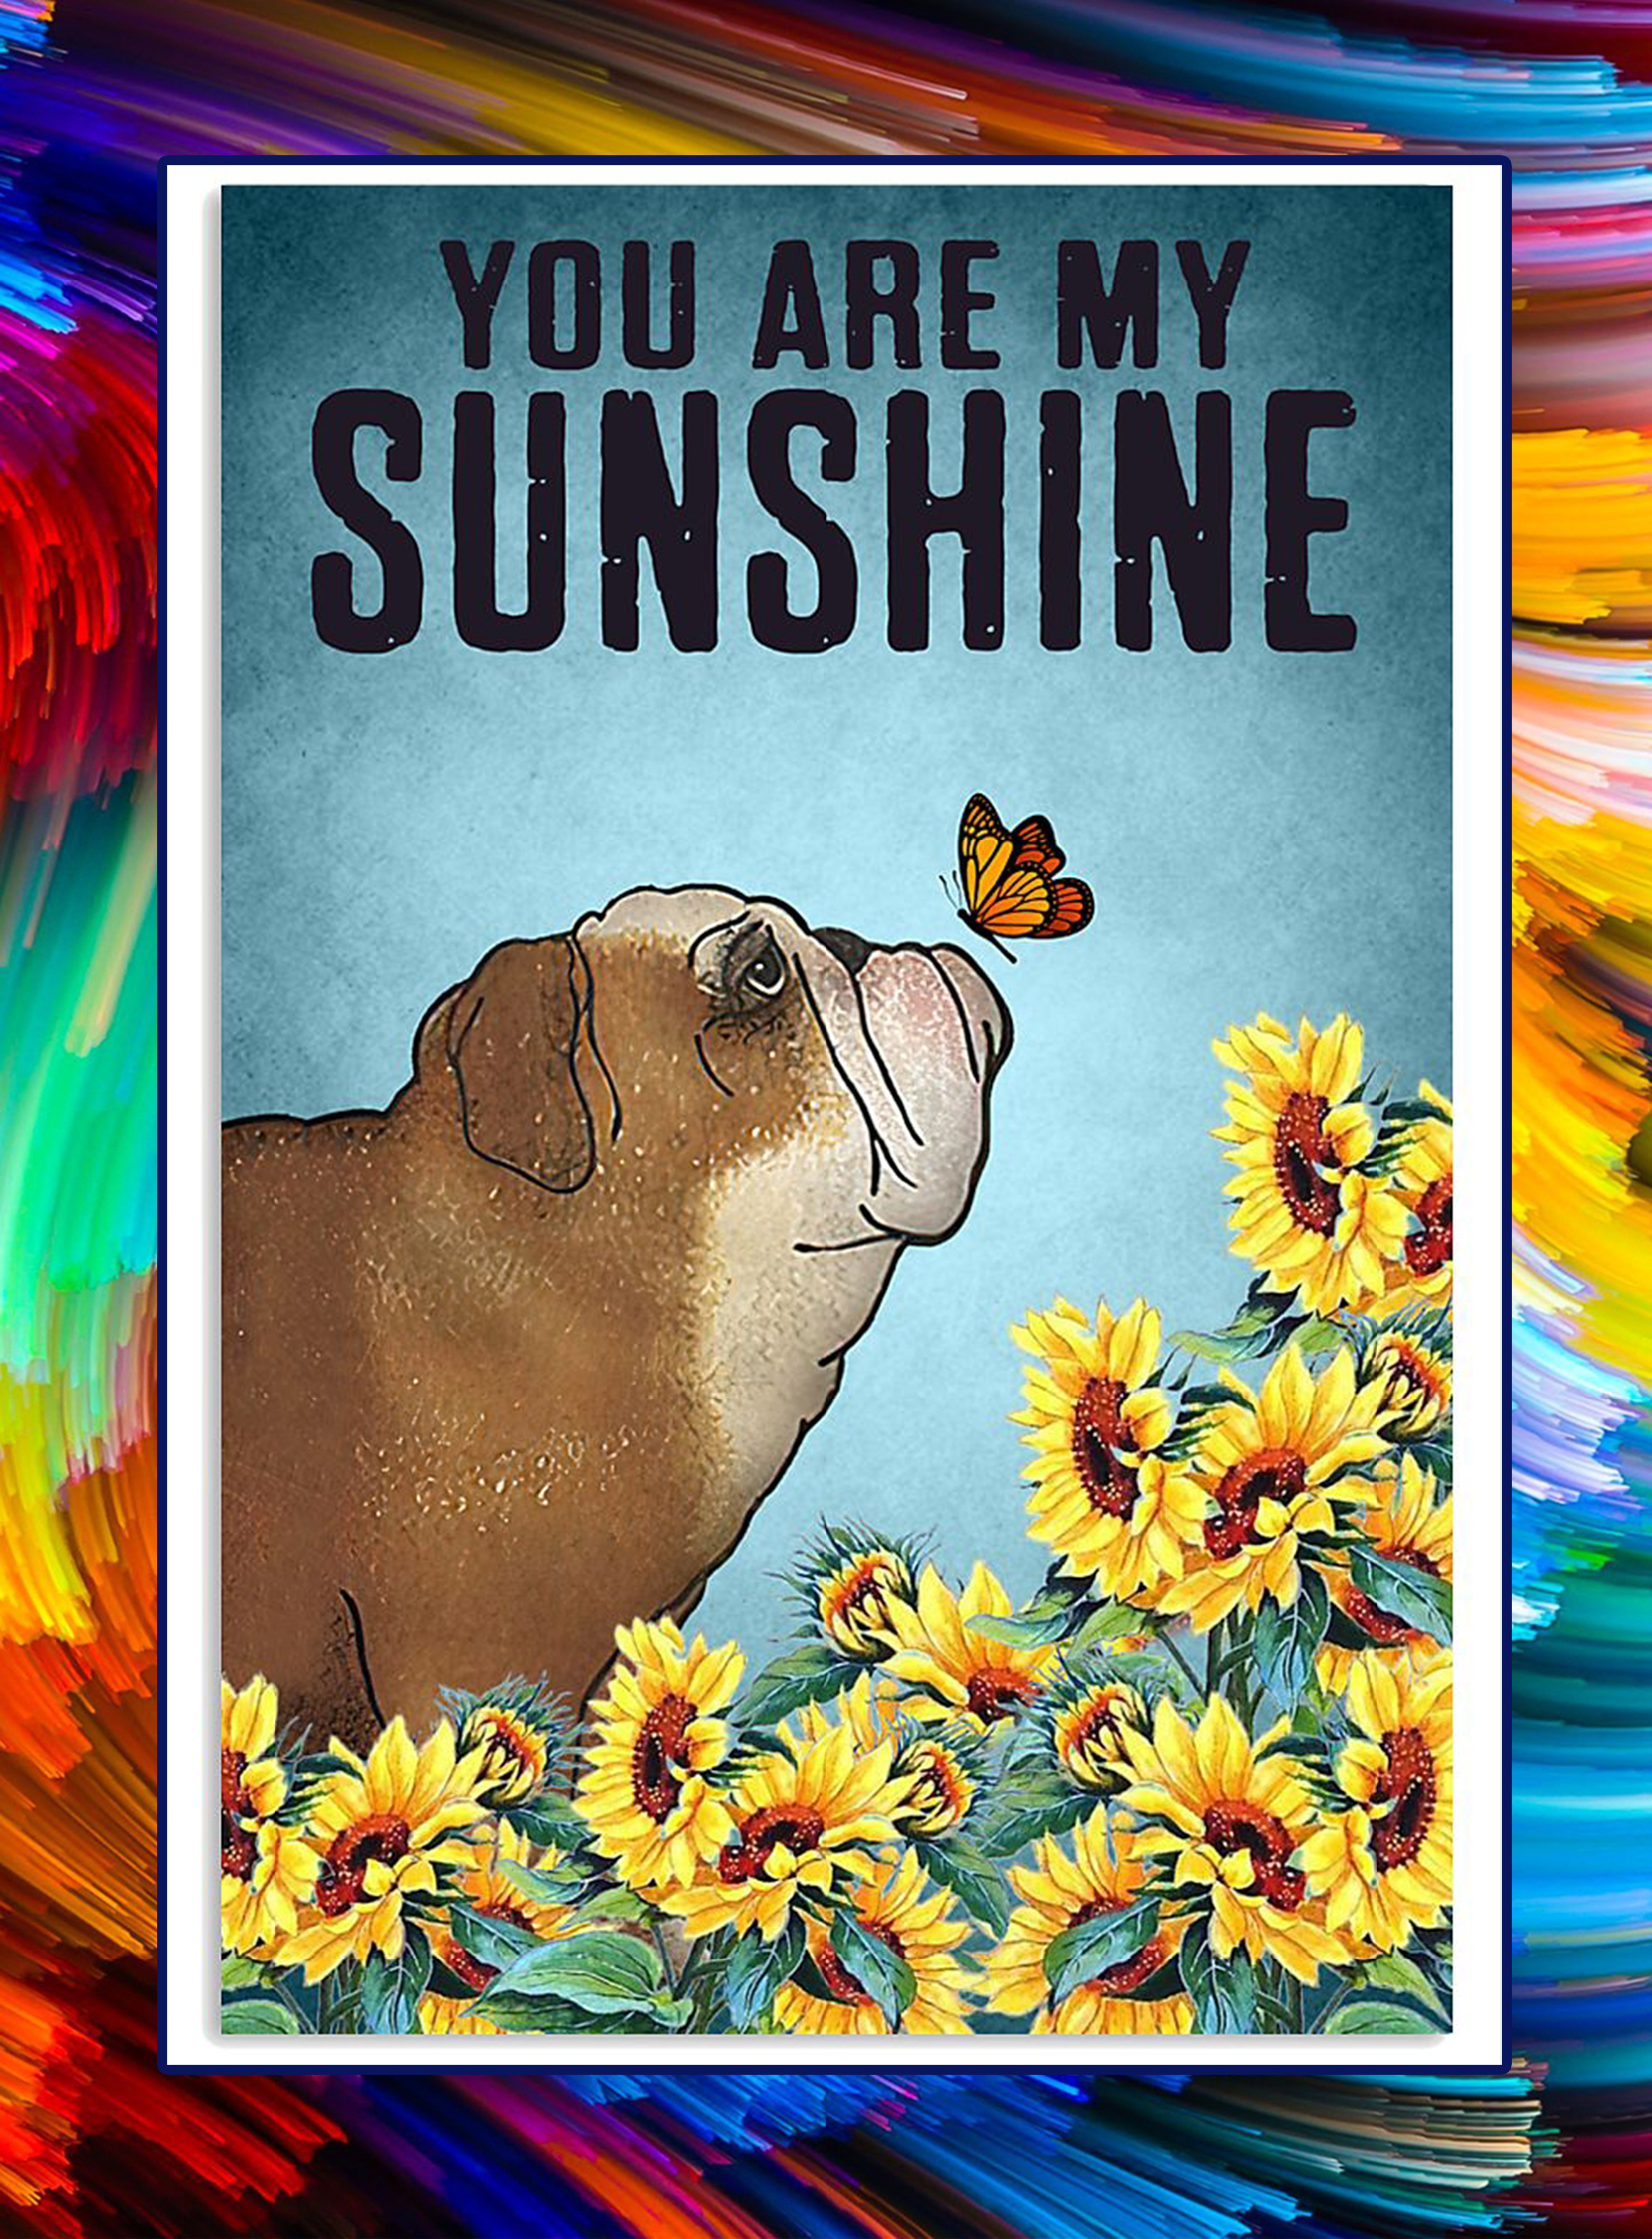 Bulldog puppies you are my sunshine poster - A2